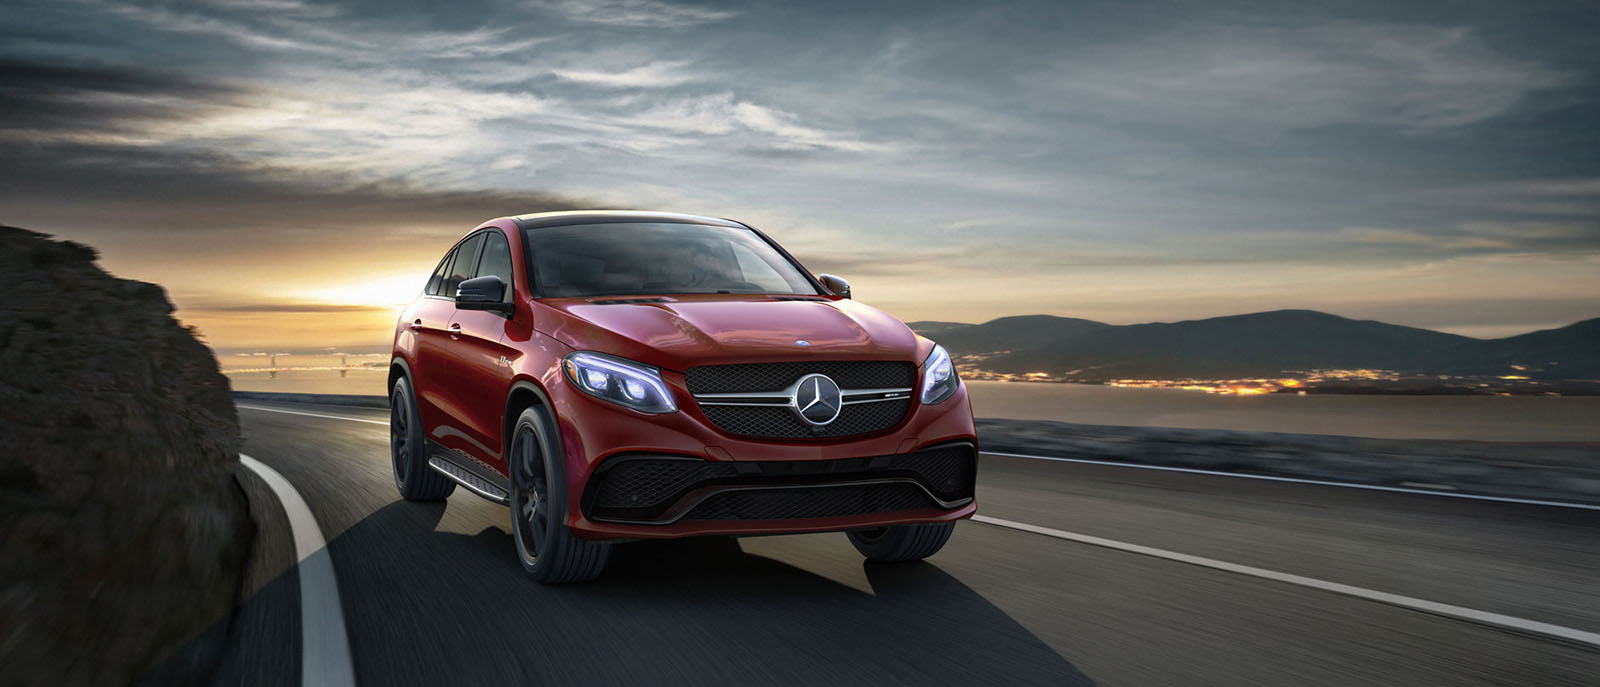 ... 2016 Mercedes Benz GLE Coupe ...